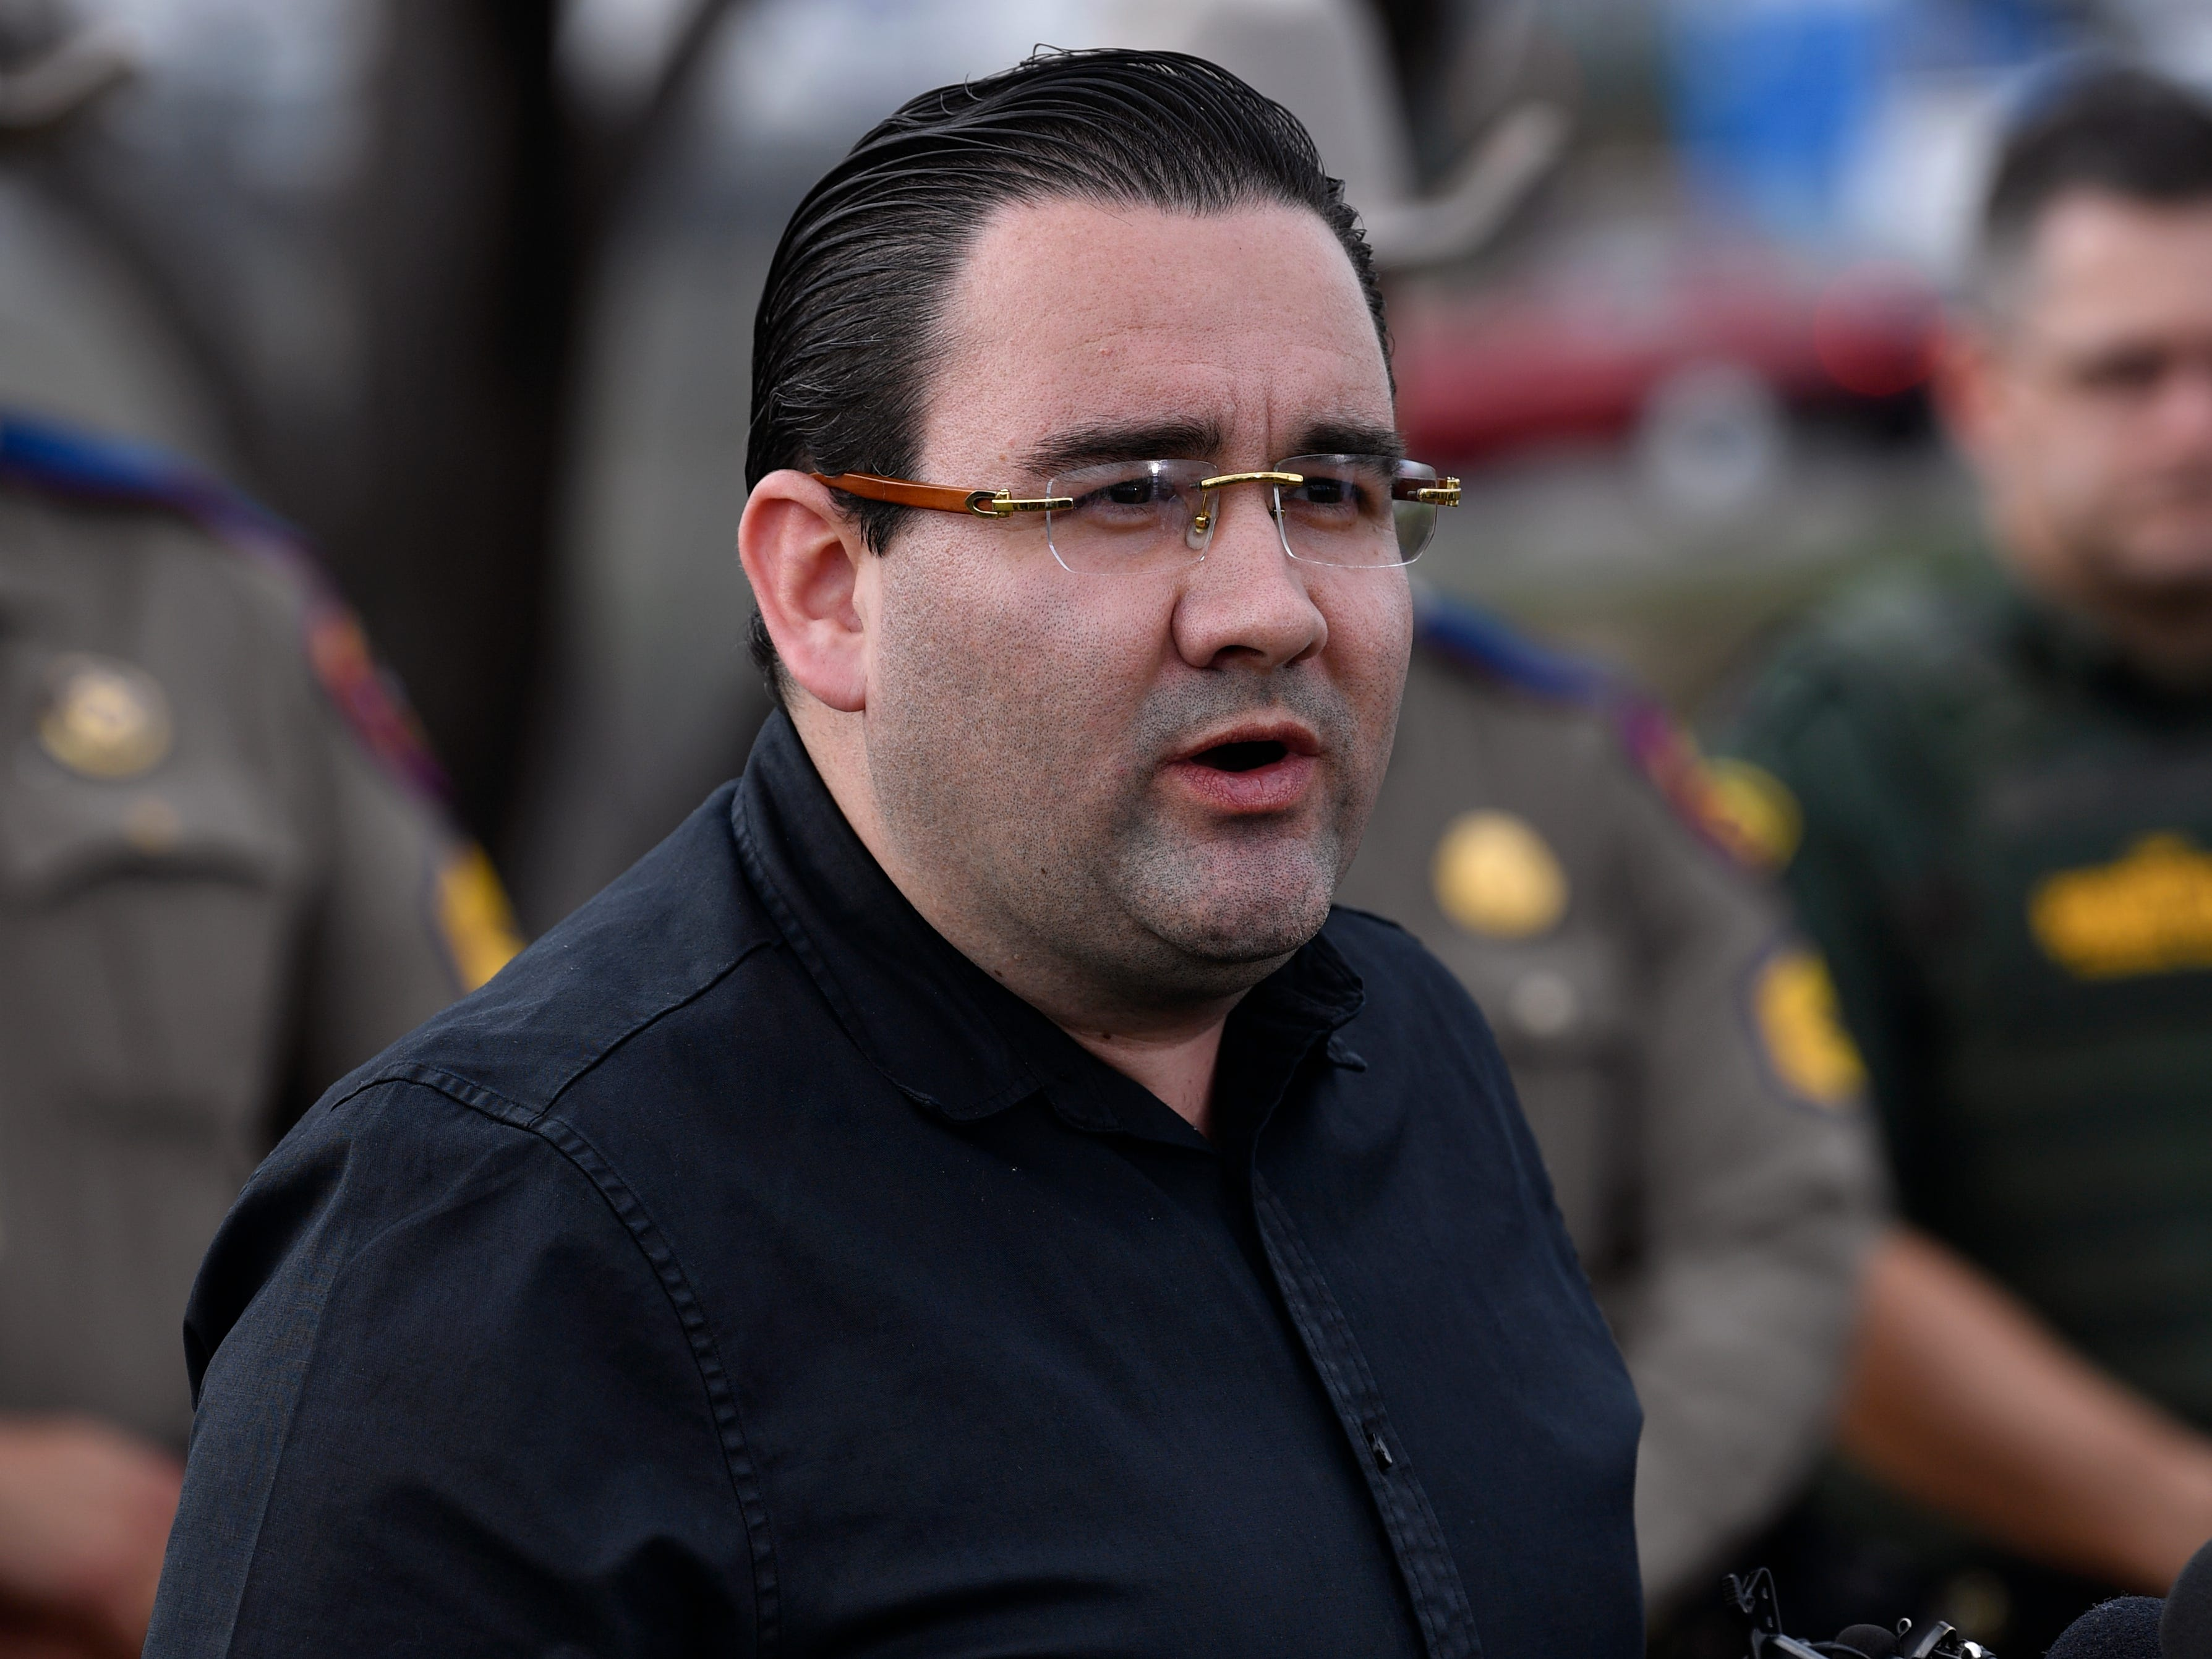 Eagle Pass Mayor Ramsey English Cantu speaks to reporters during a press conference Wednesday Feb. 6, 2019 on the area's response to the migrant caravan which arrived recently across the river in Piedras Negras.